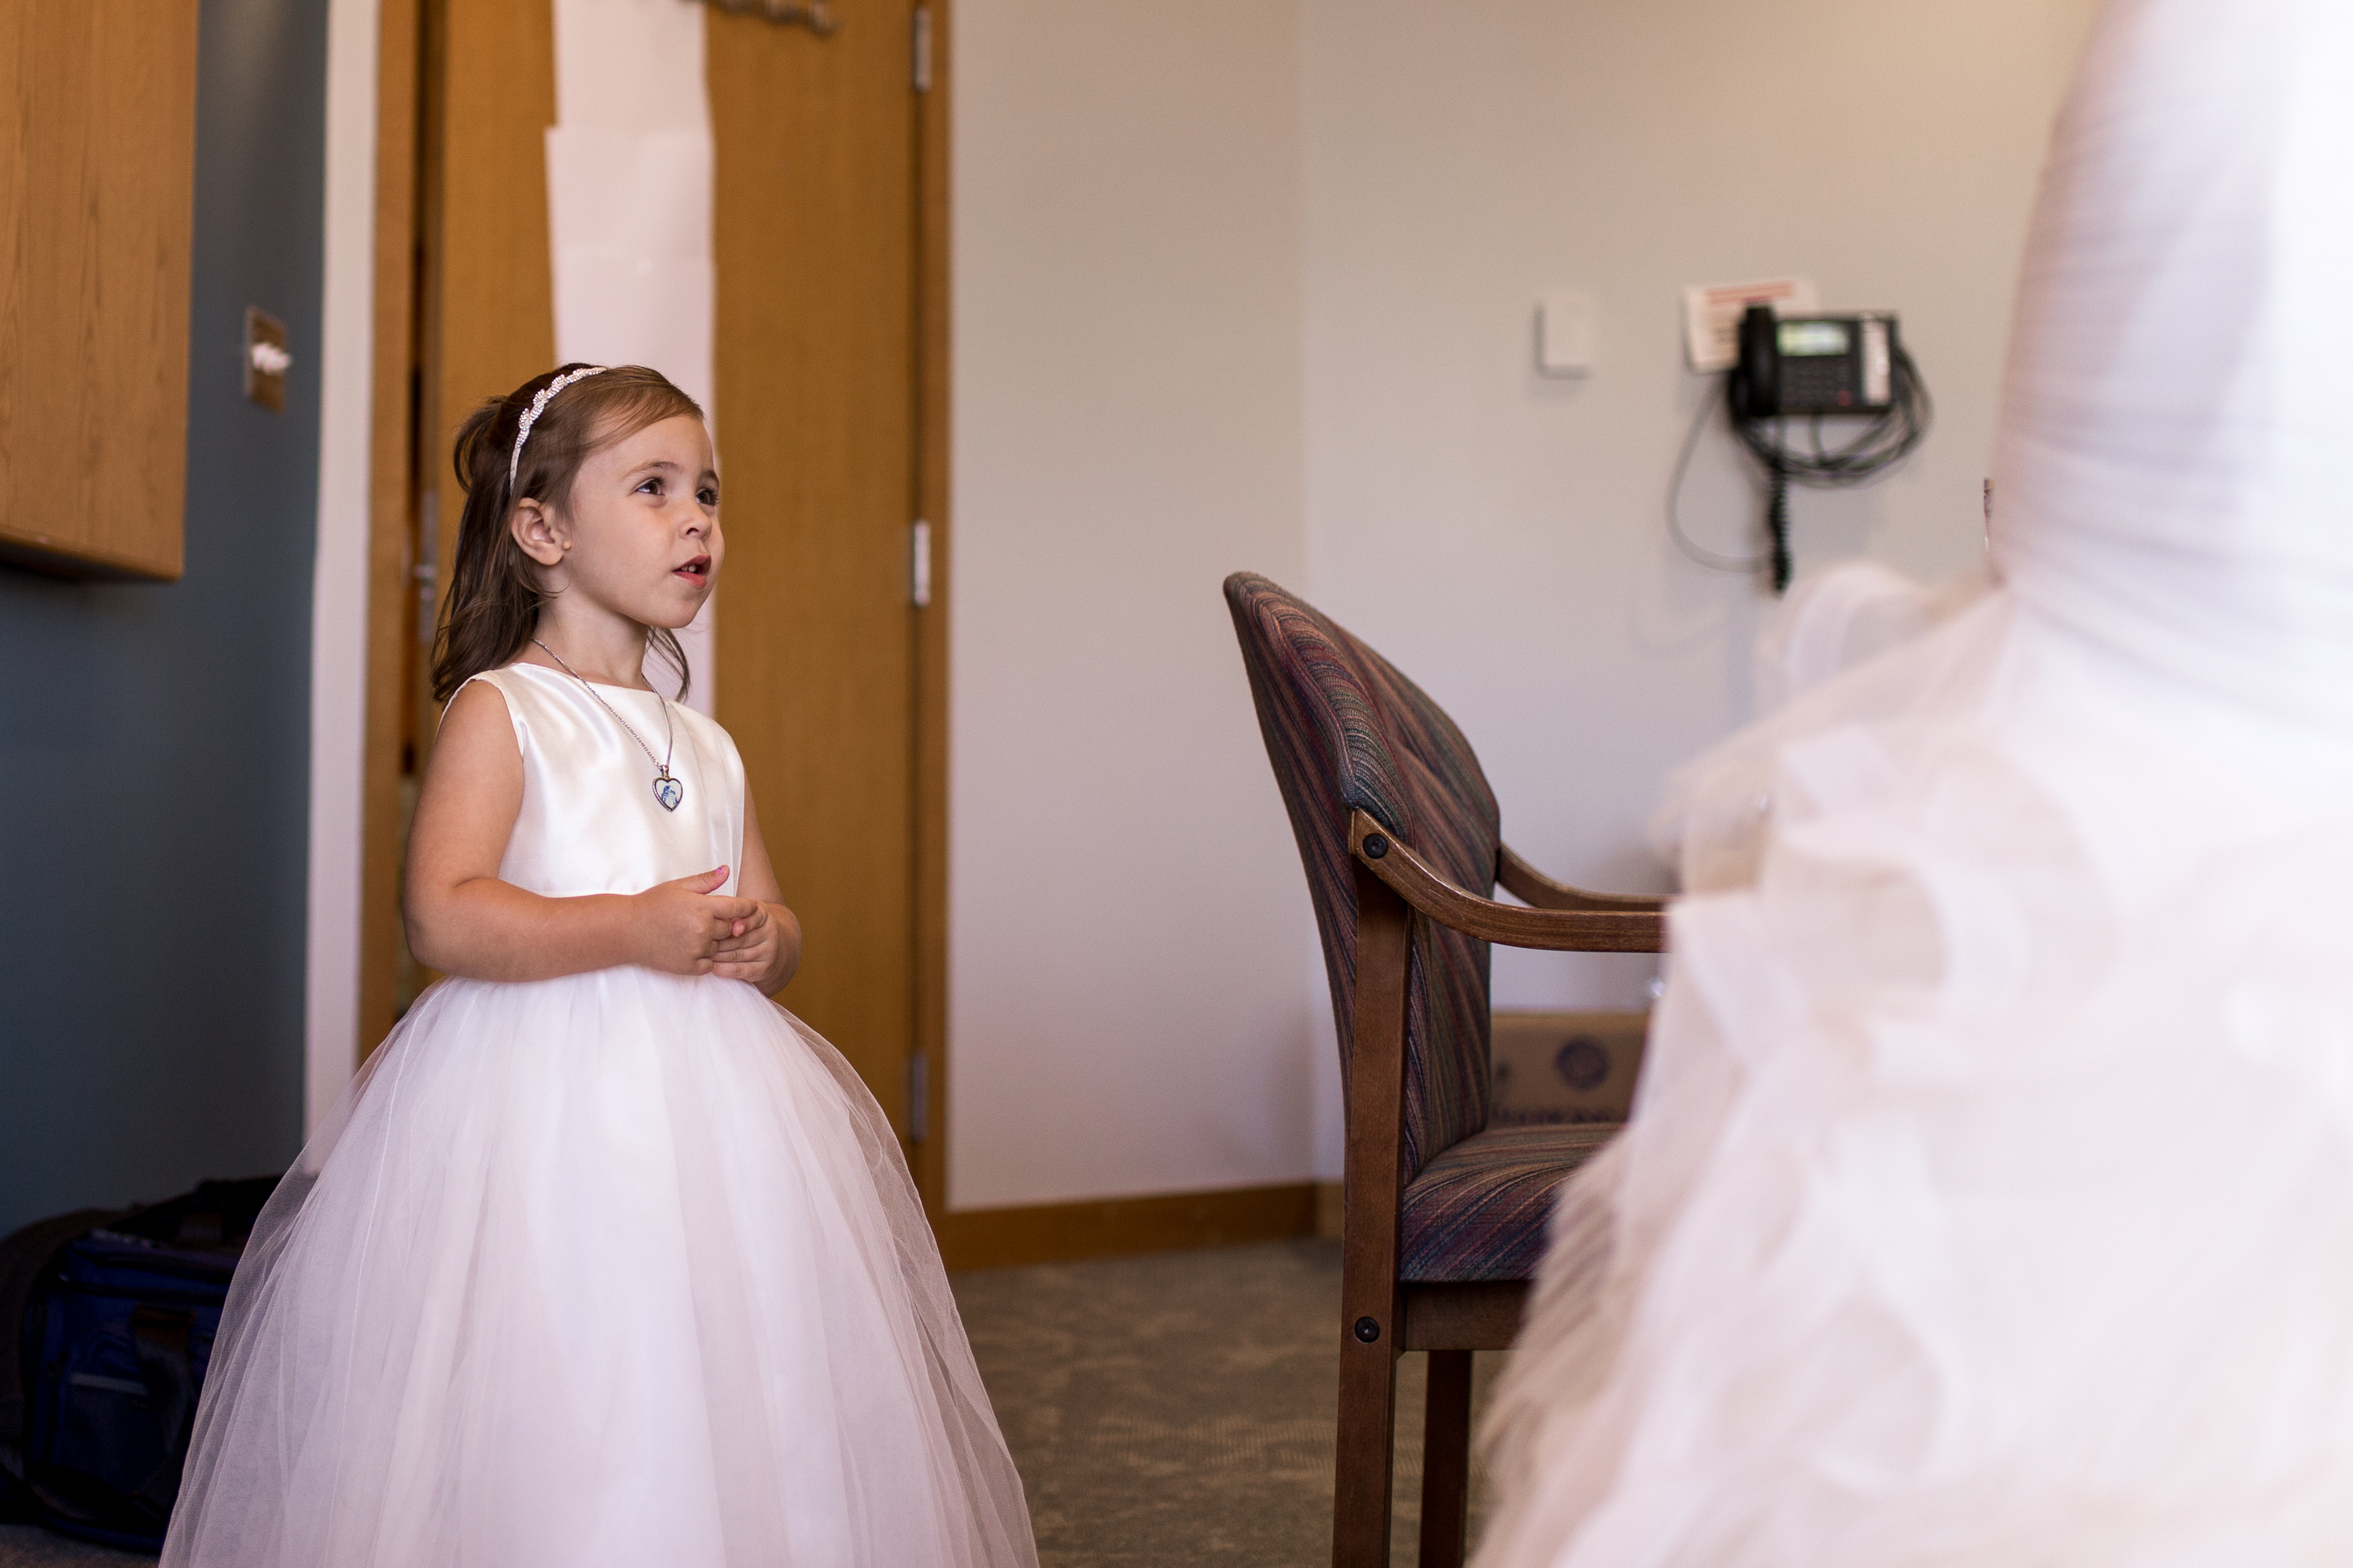 flower girl admiring bride on wedding day at Minnetrista in Muncie Indiana